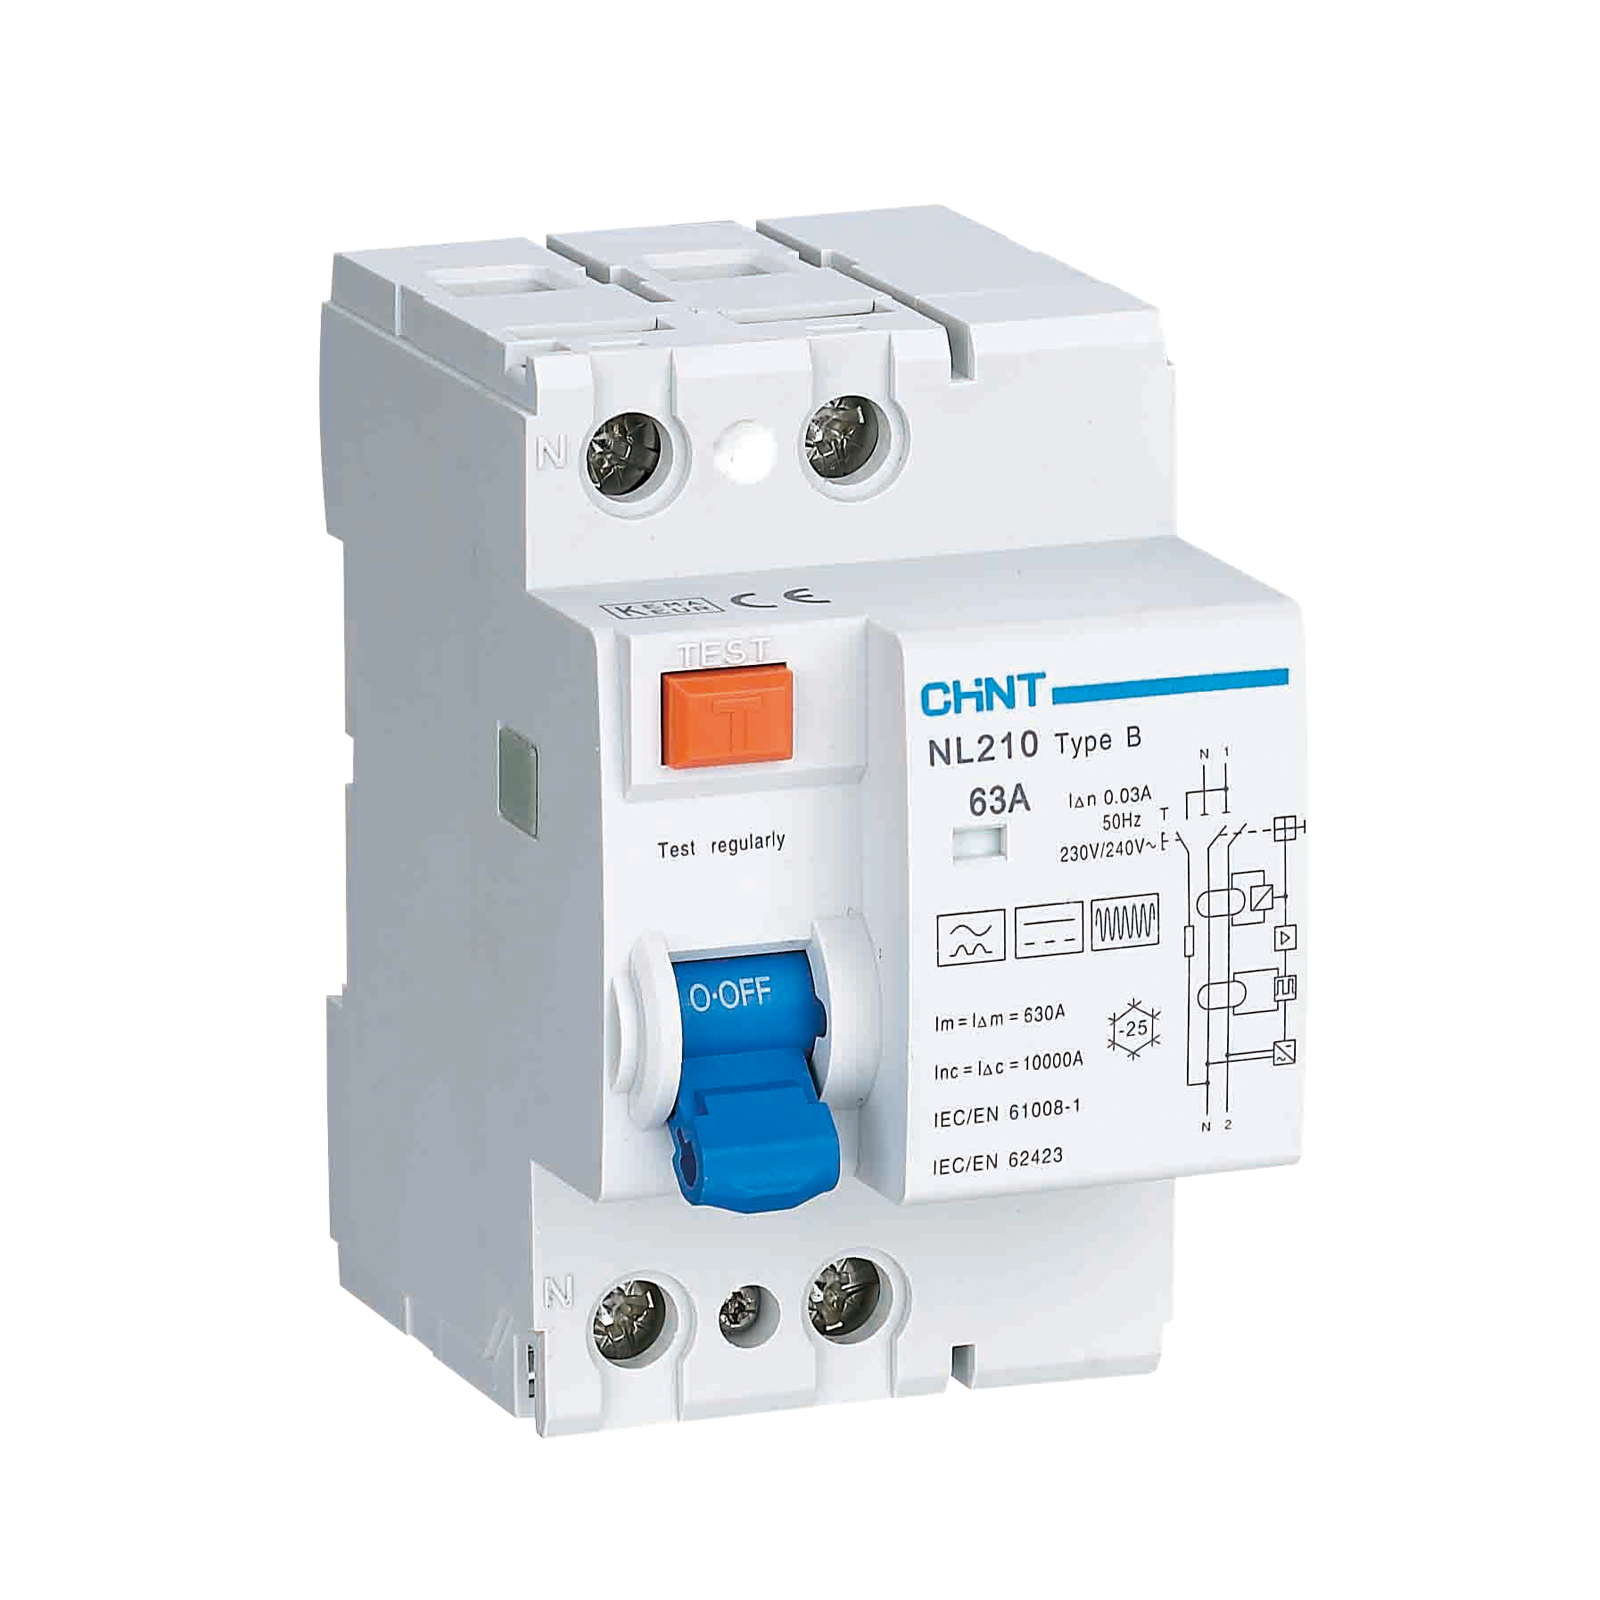 Elexshow Sandown Park Chint Europe Uk Ltd Wiring A Consumer Unit And Installation Distribution Board We Will Be Exhibiting At The 2018 Our Representatives Available Stand B34 To Show You Range Of Units